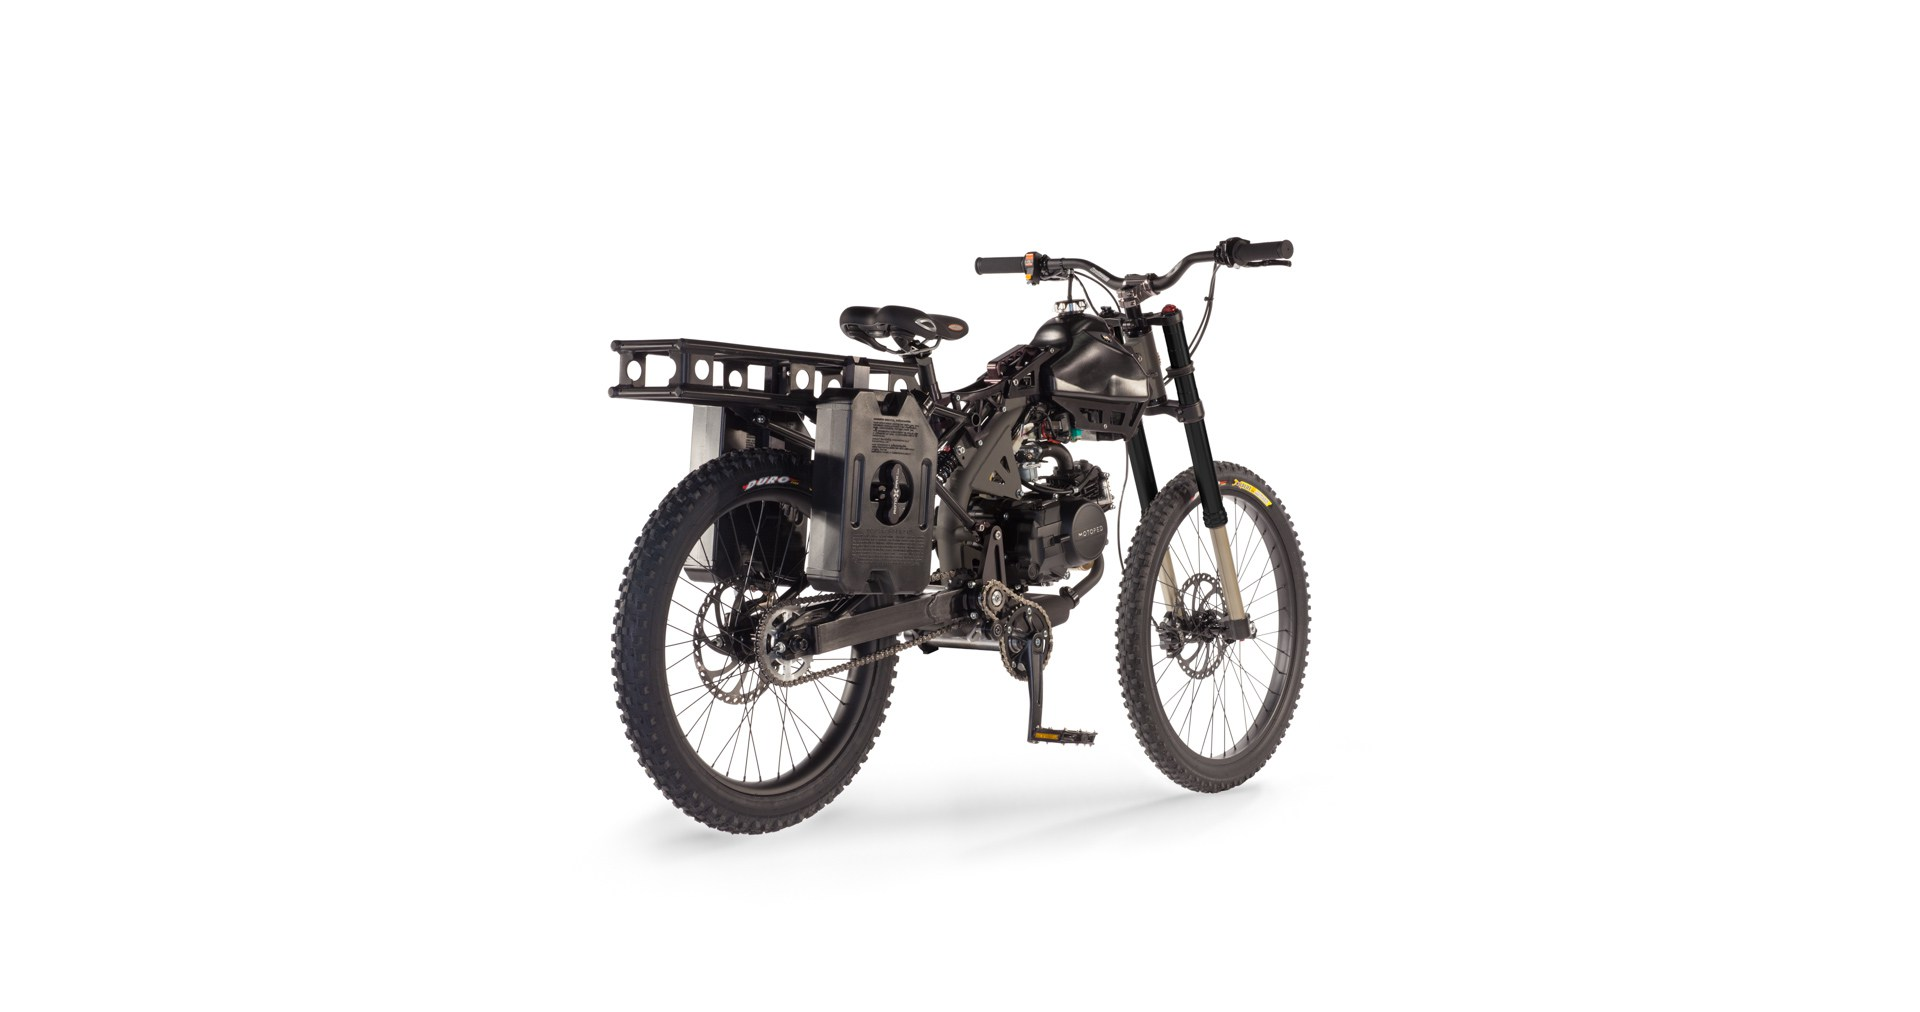 Motoped Survival Bike Is The Ultimate In Pedal-Power Adventuring ...